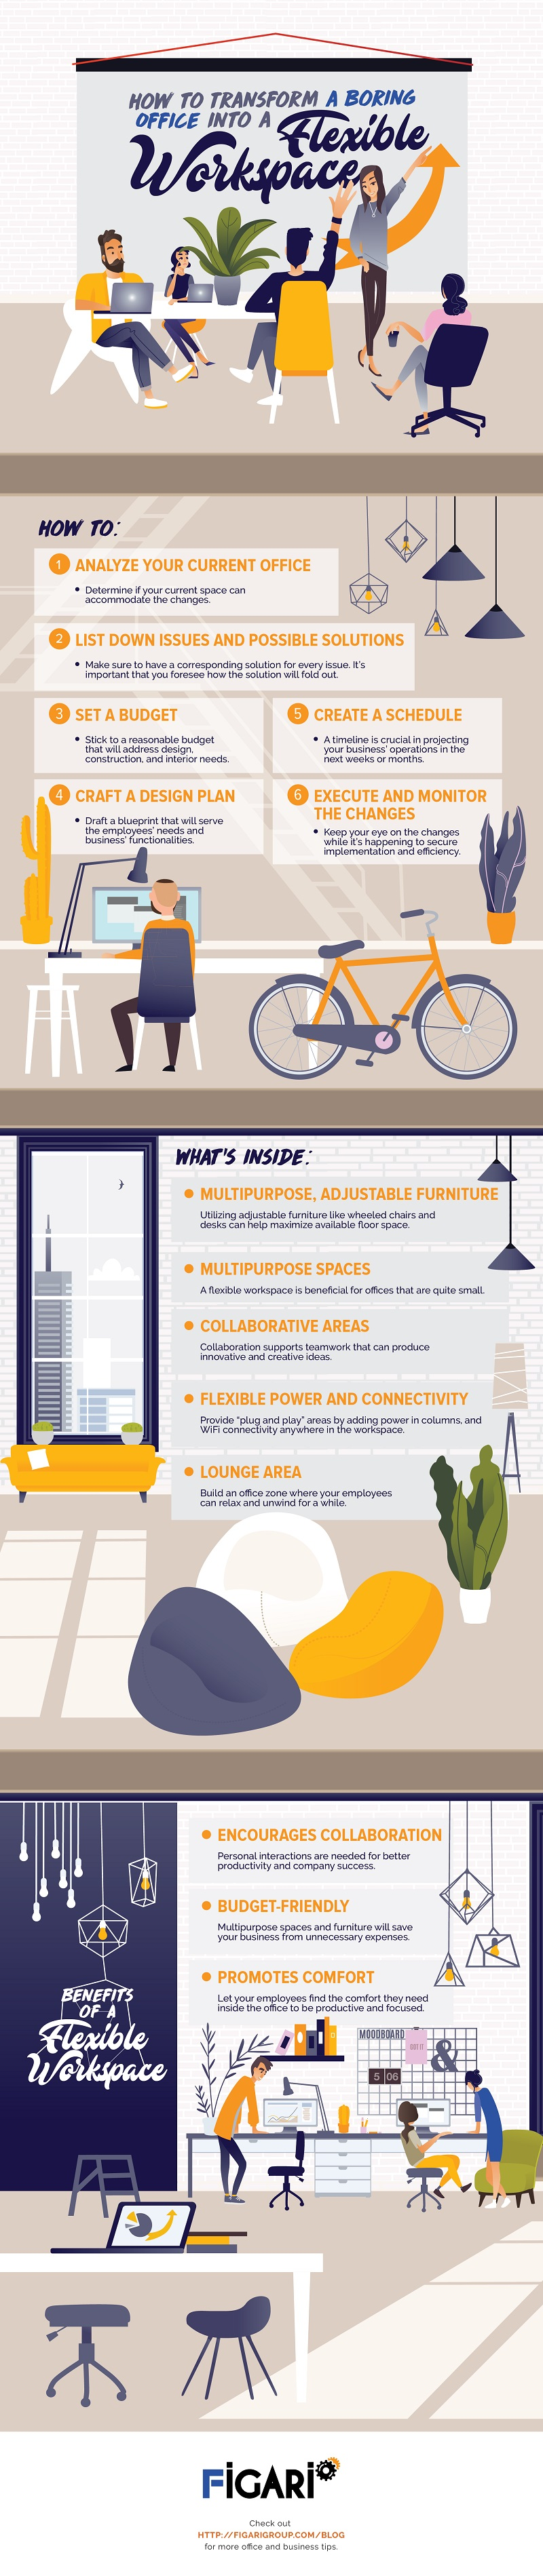 smallHow to Transform a Boring Office into a Flexible Workspace 01 - Create Informative Post